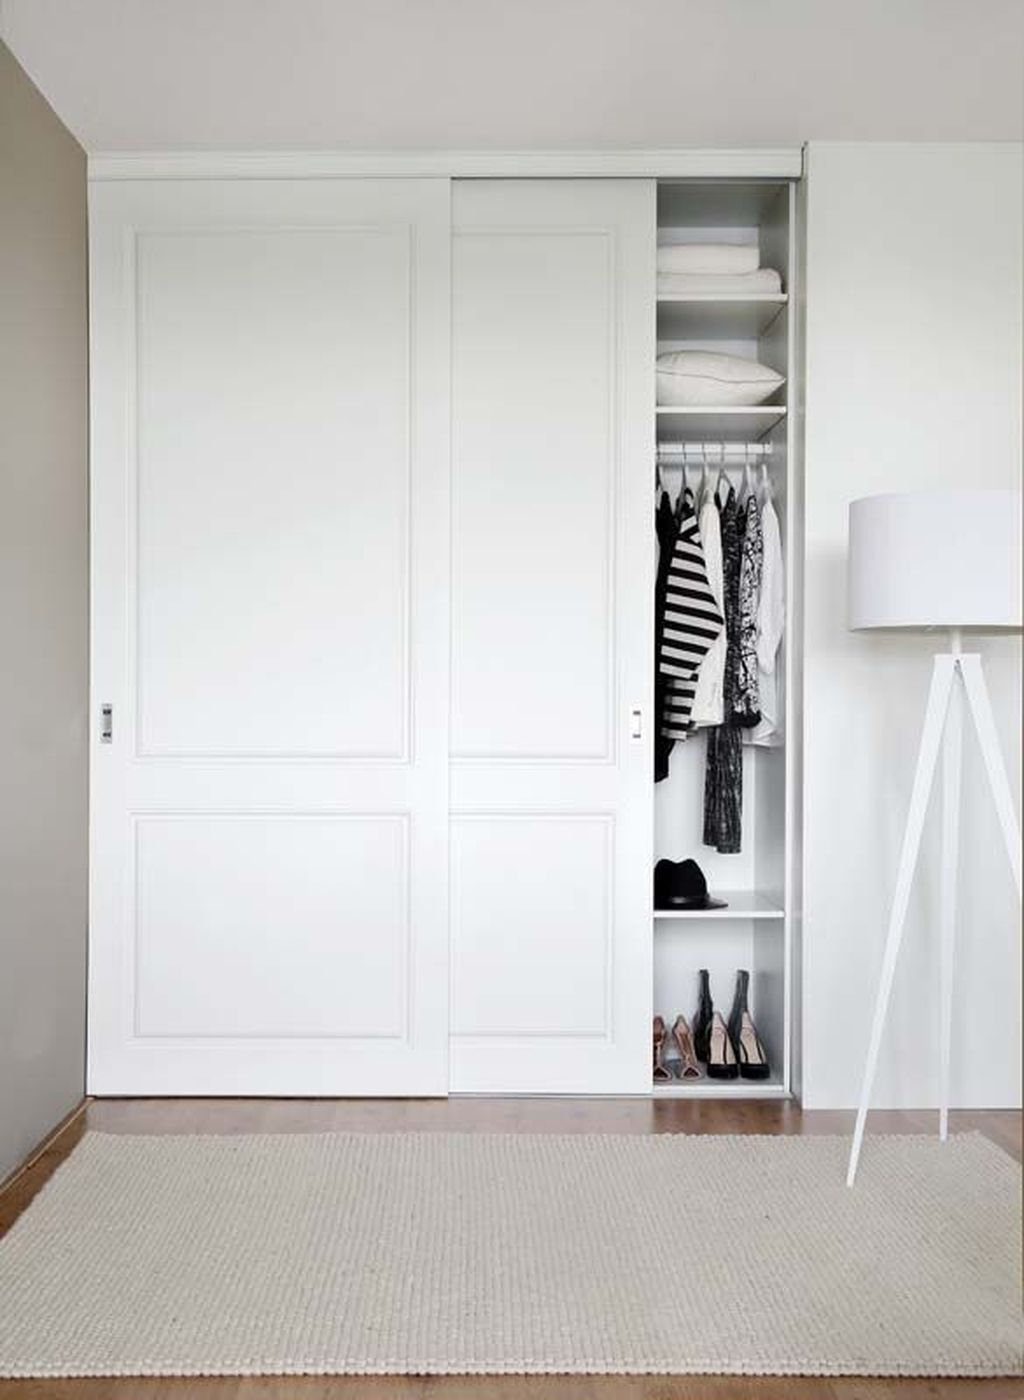 20 Amazing Sliding Door Wardrobe Design Ideas Sliding Door Wardrobe Designs Wardrobe Doors Bedroom Closet Doors